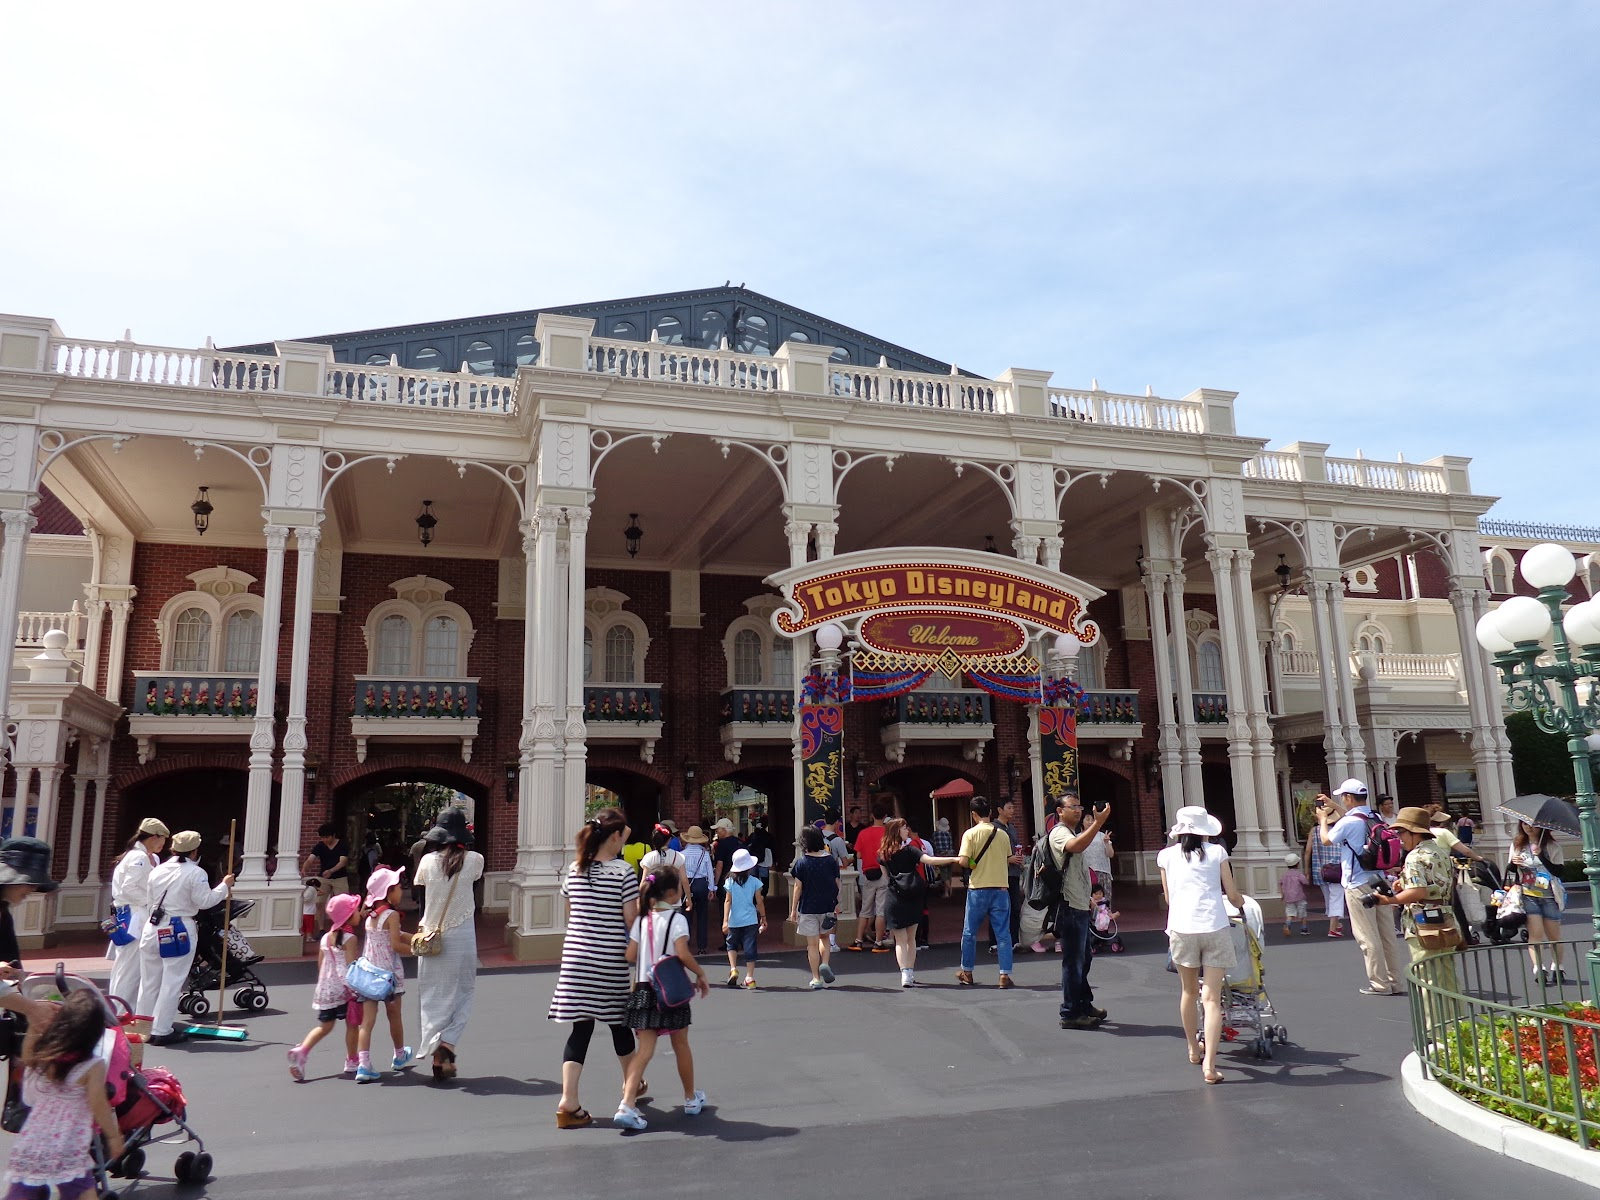 Nutrition, Food, Travel and More: Tokyo Disneyland